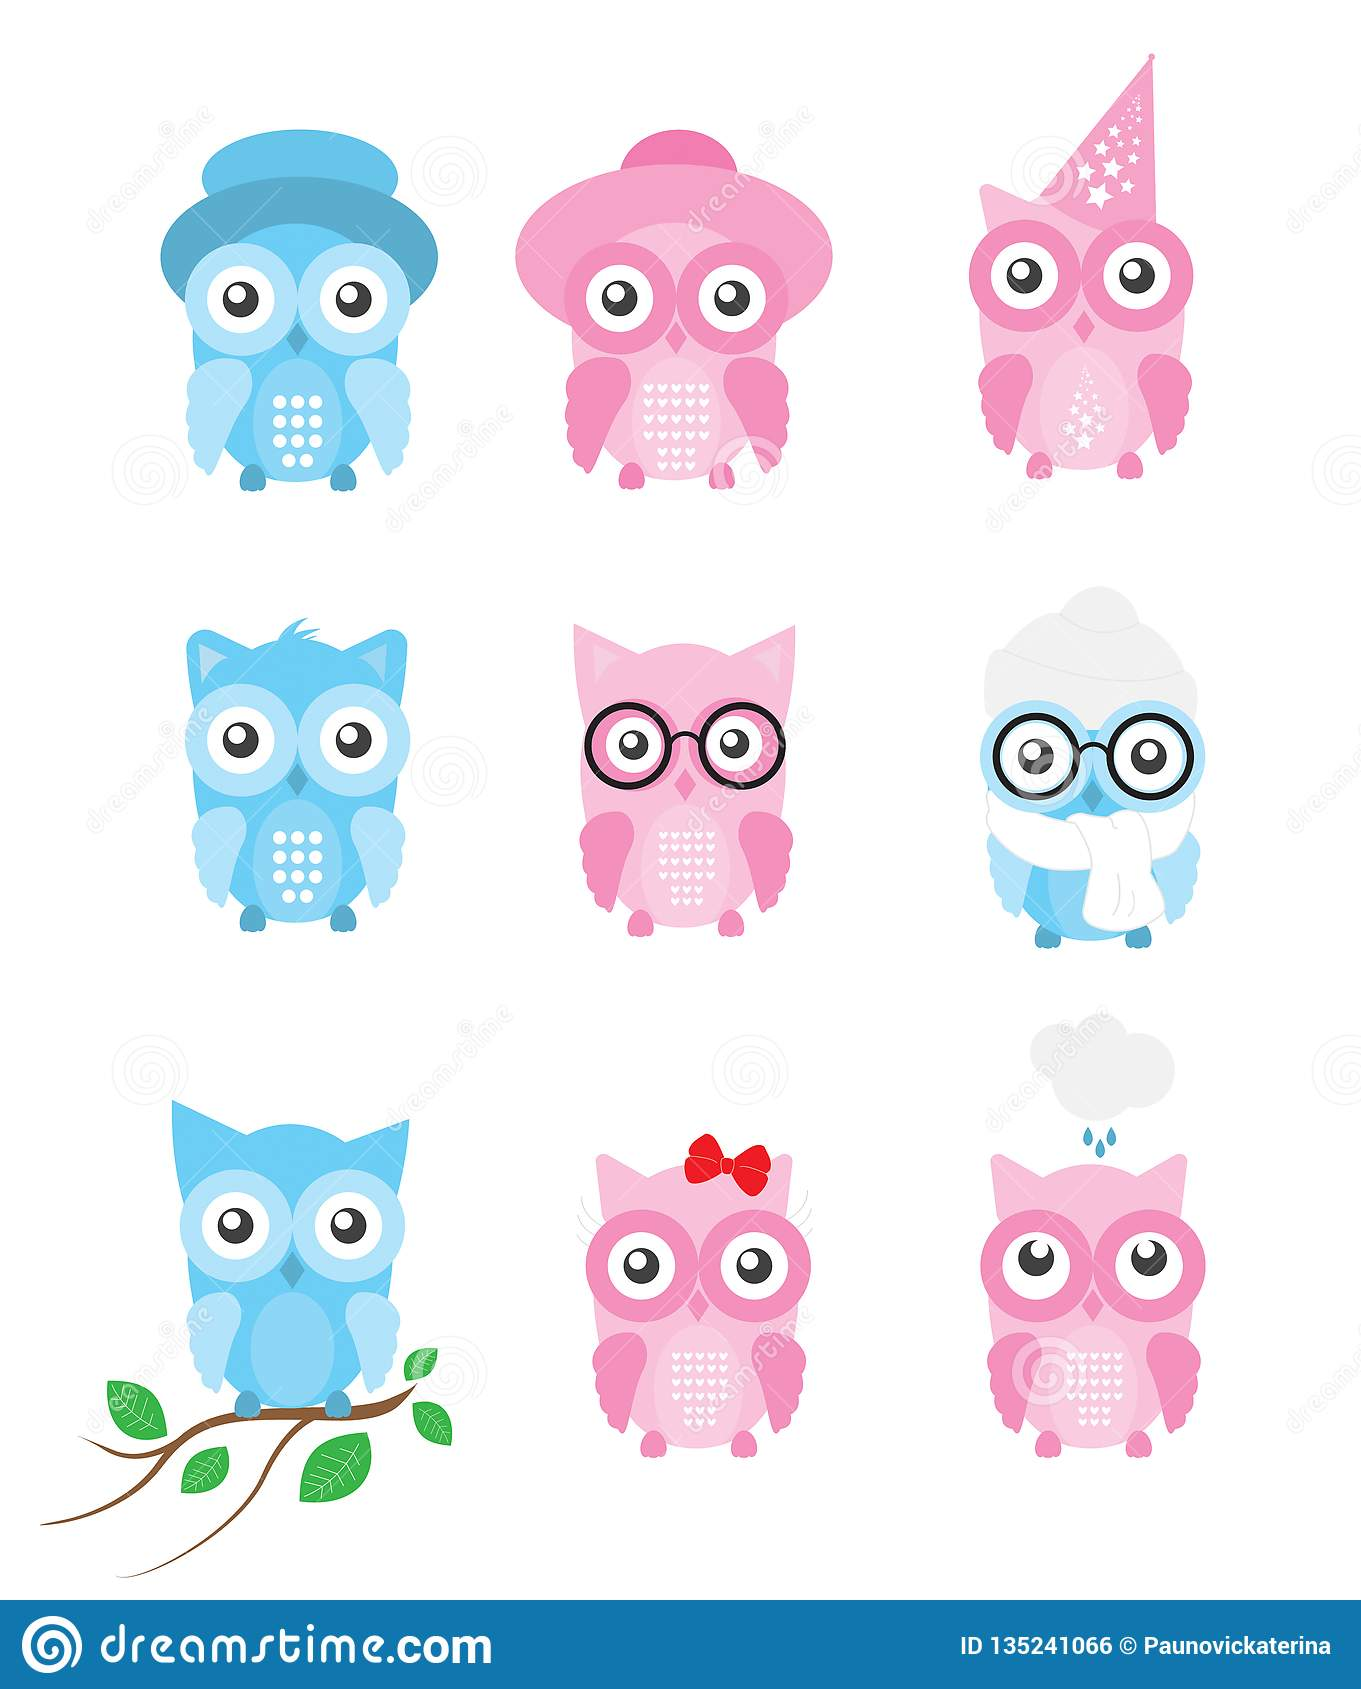 Owl Vector Collection / Set with separated cute cartoon owls illustrations, isolated on white background